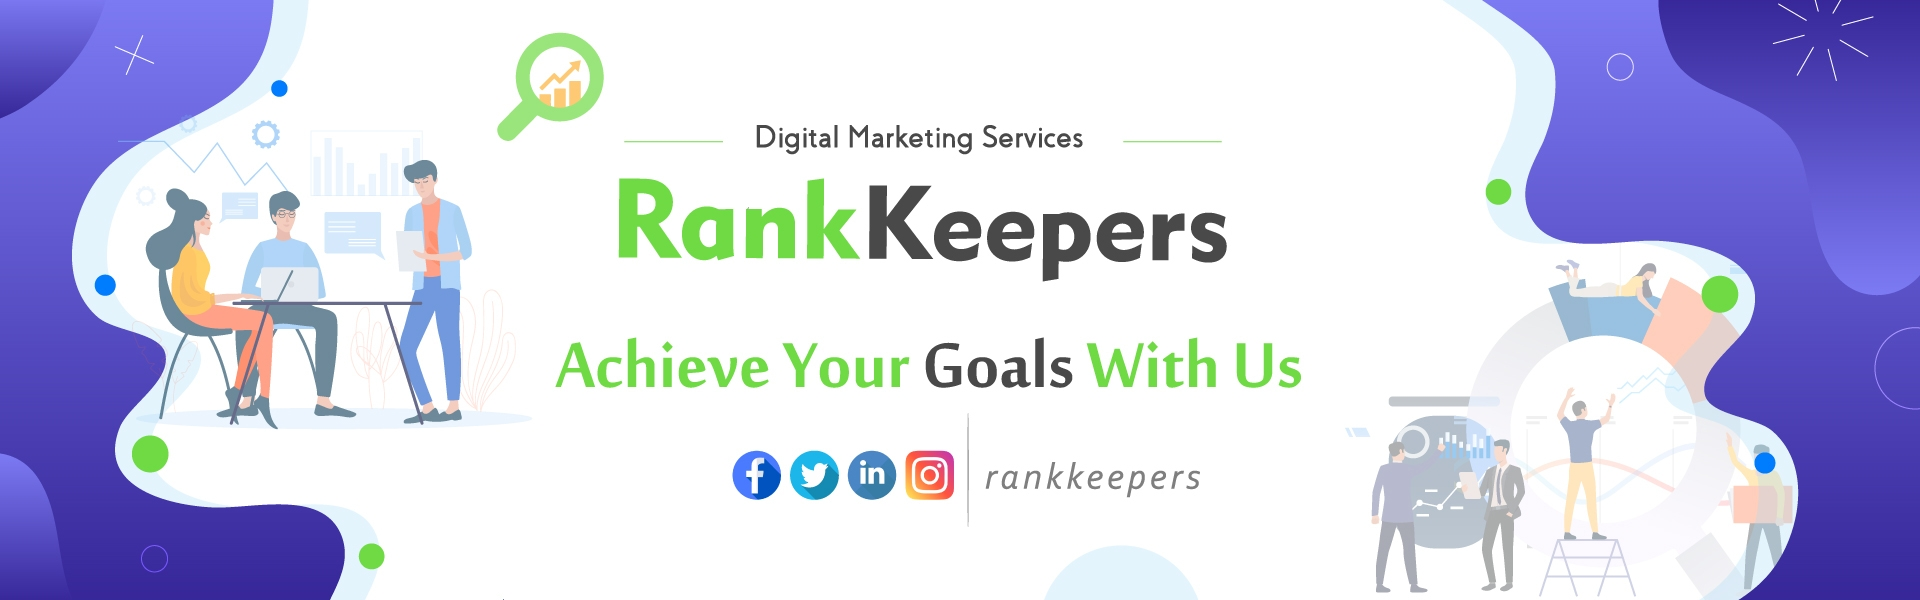 RankKeepers (@rankkeepers) Cover Image